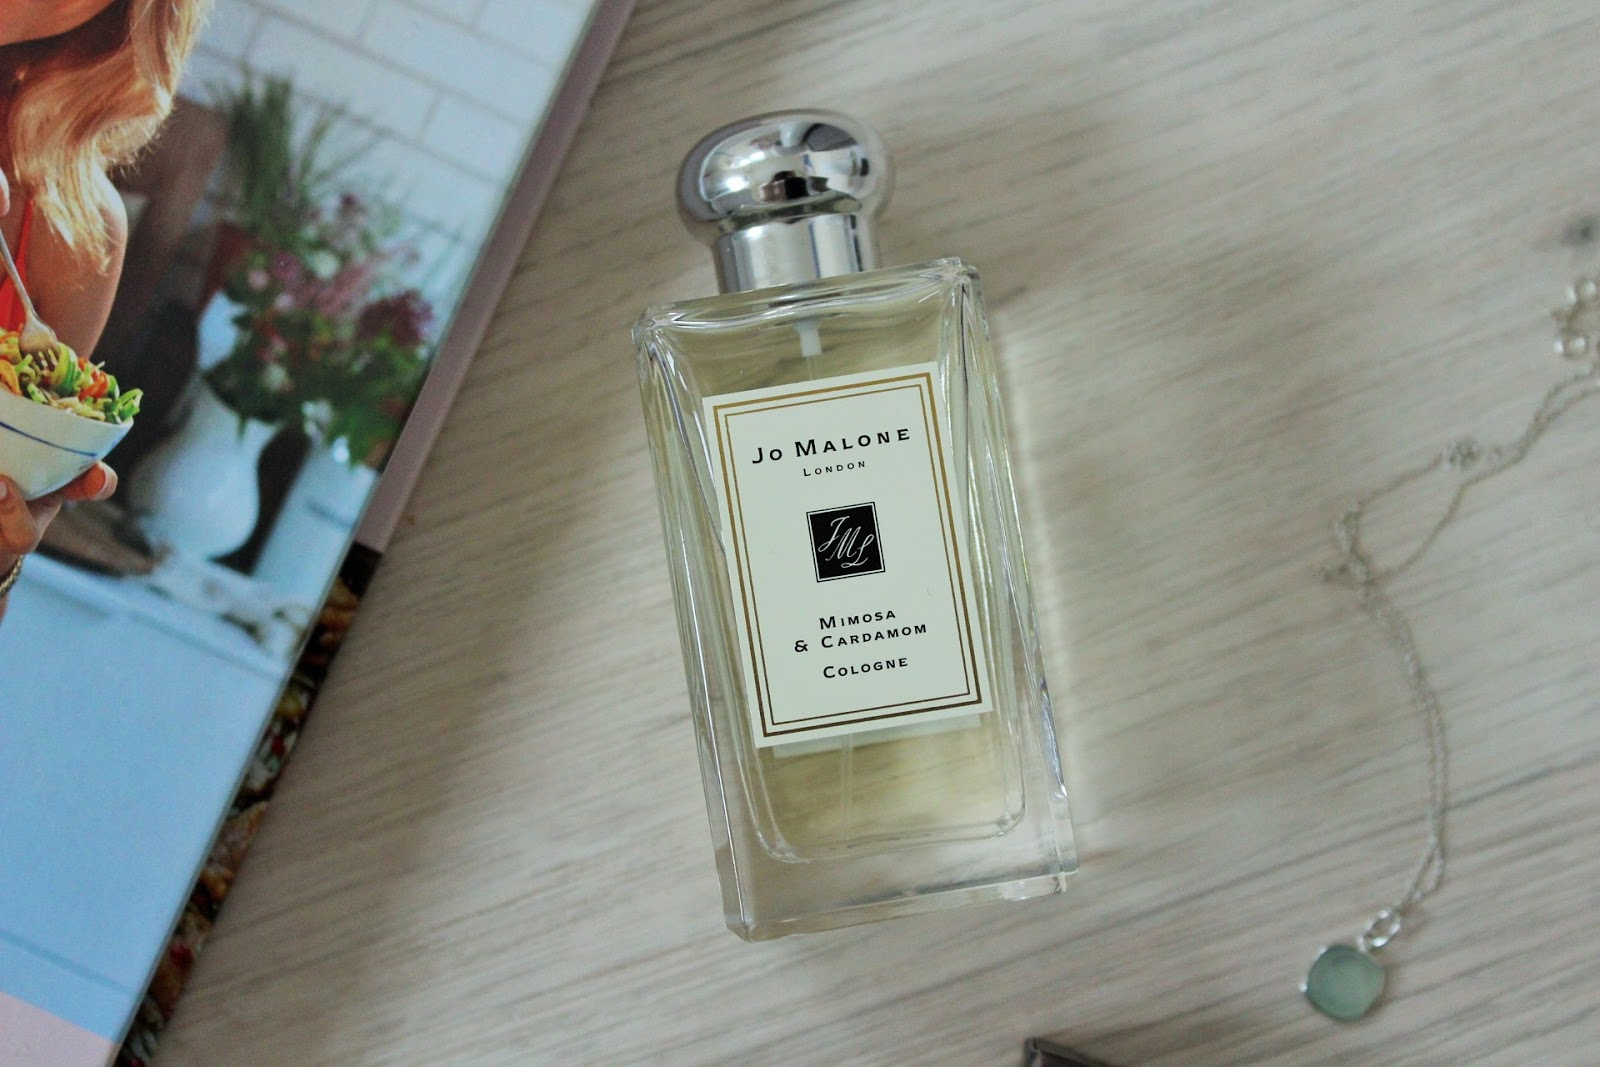 Jo Malone Mimosa and Cardamom Cologne